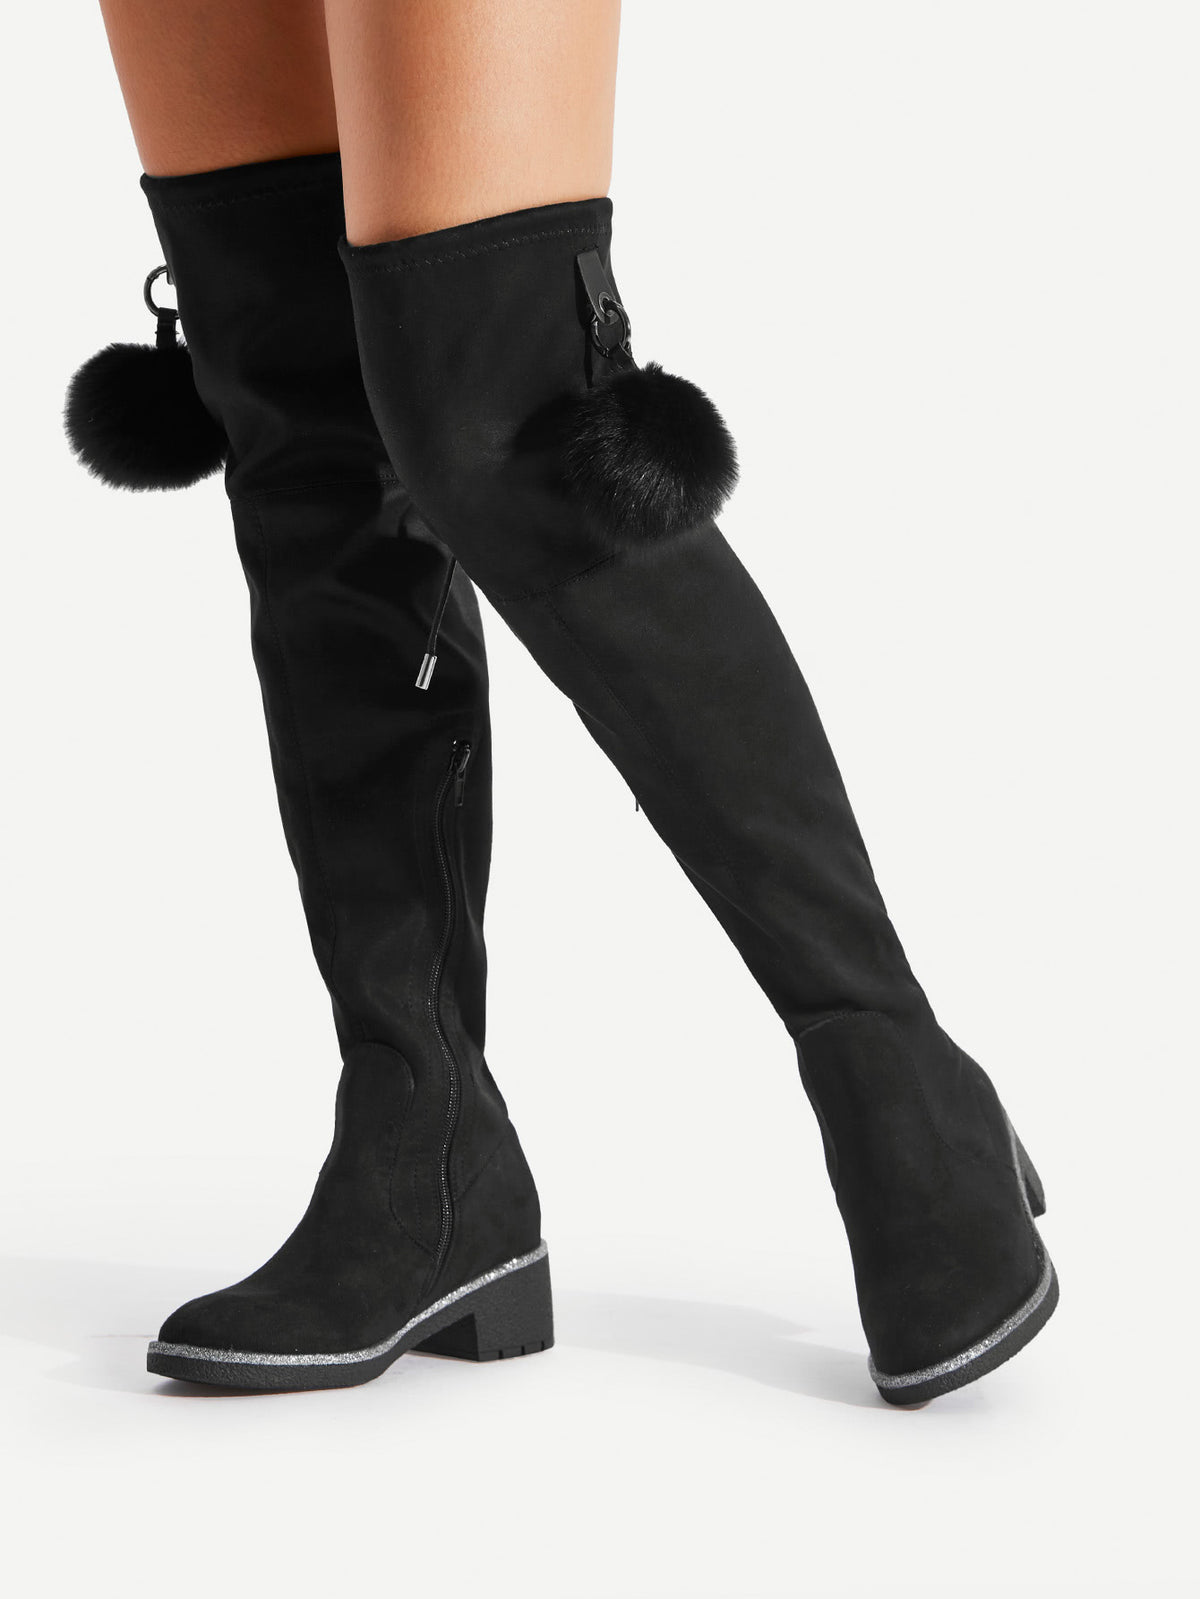 Pom Pom Decorated Over The Knee Boots